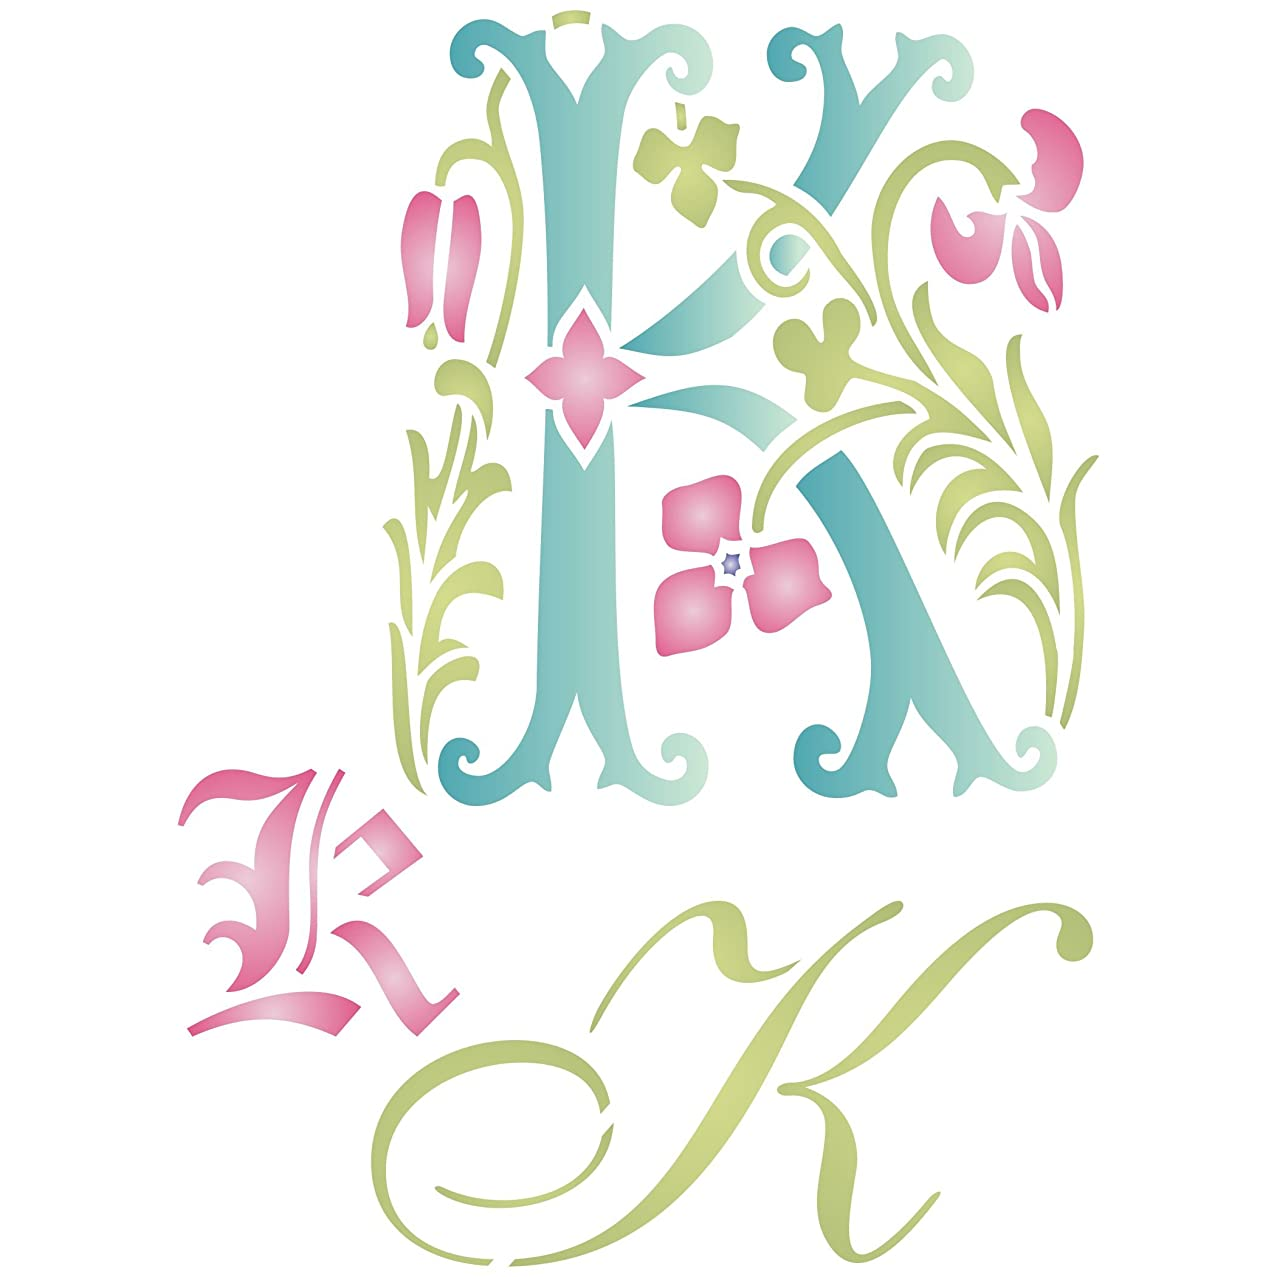 """Initial K Stencil (size 6.5""""w x 8.8""""h) Reusable Stencils for Painting - Best Quality Letter Wall Art Décor Ideas - Use on Walls, Floors, Fabrics, Glass, Wood, Cards, and More…"""